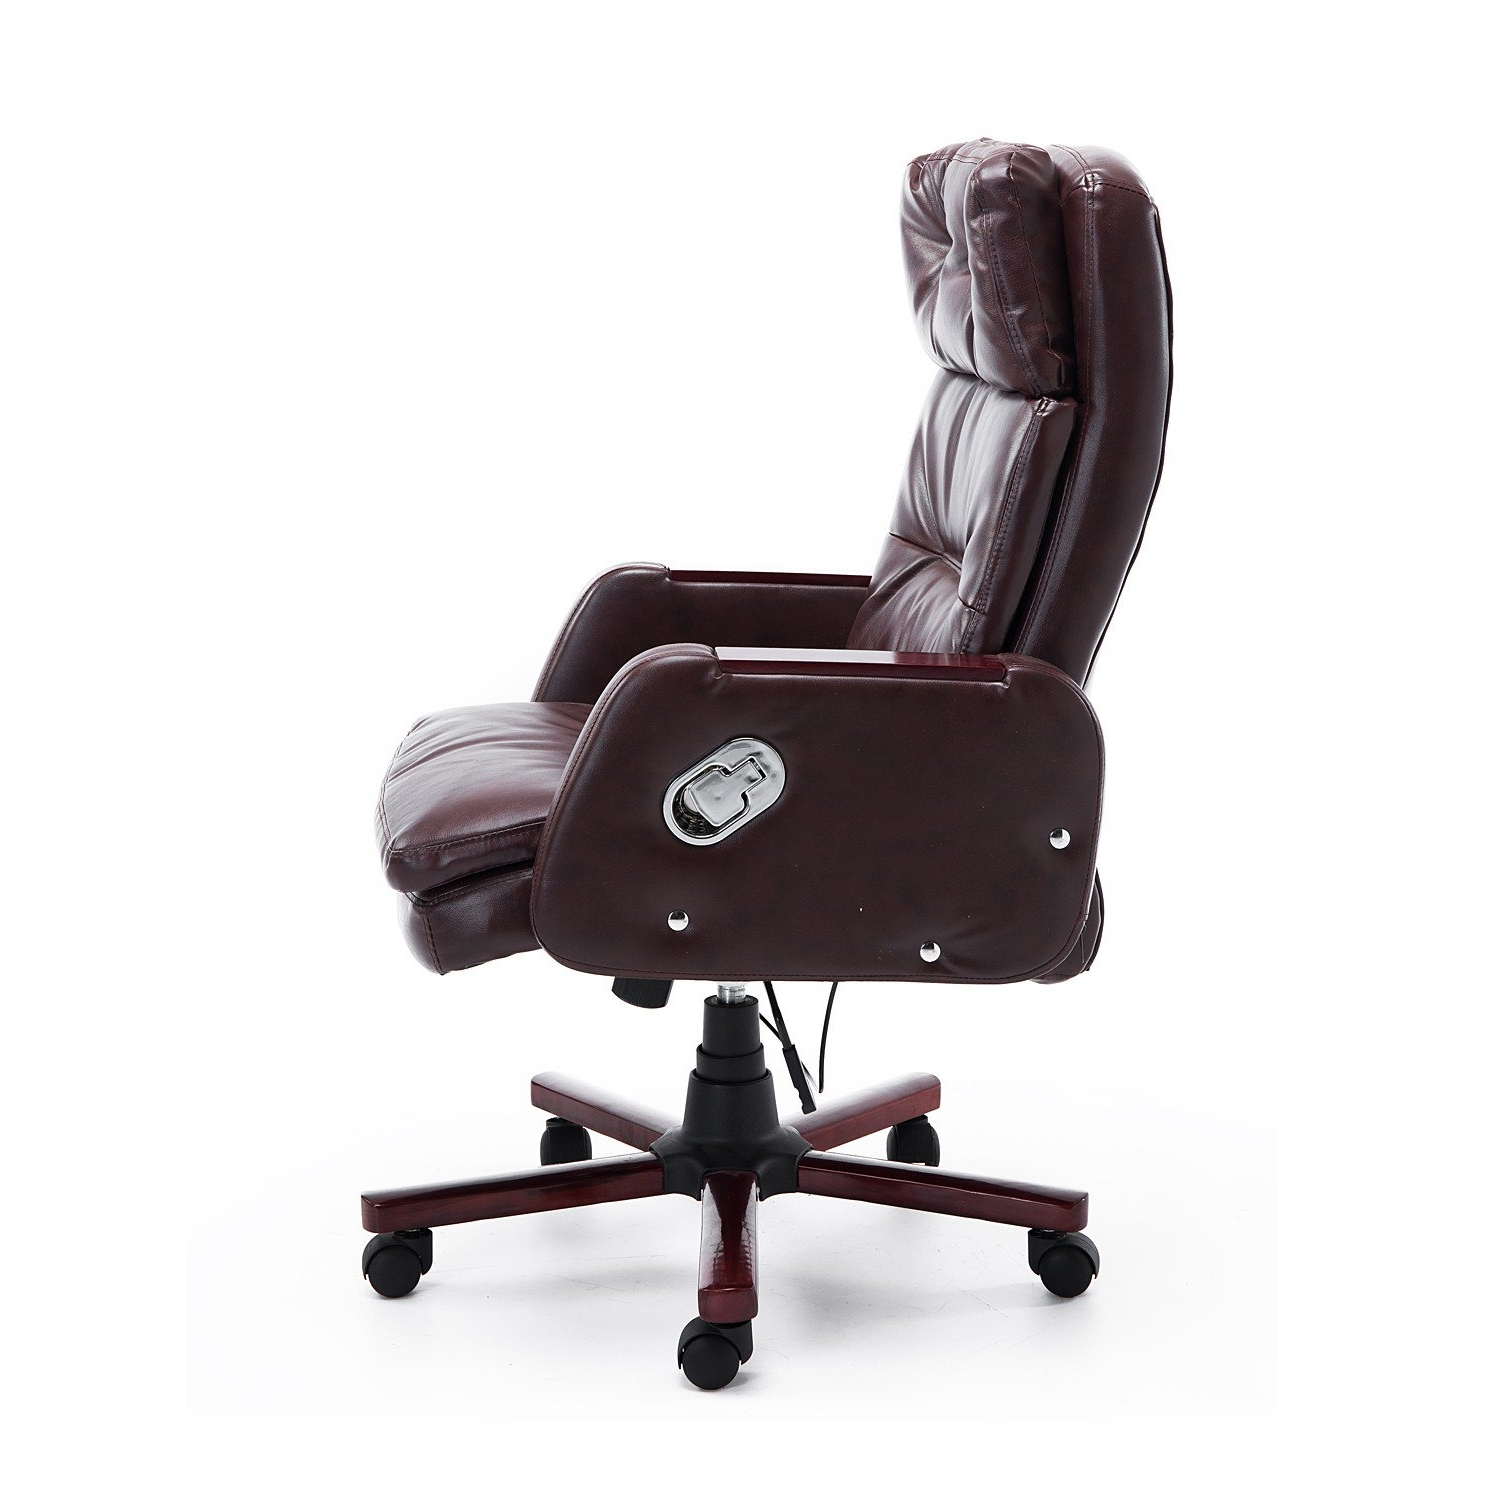 Homcom Faux Leather Reclining Office Chair Seat With Adjustable Throughout Most Up To Date Executive Office Chairs With Adjustable Lumbar Support (View 8 of 20)